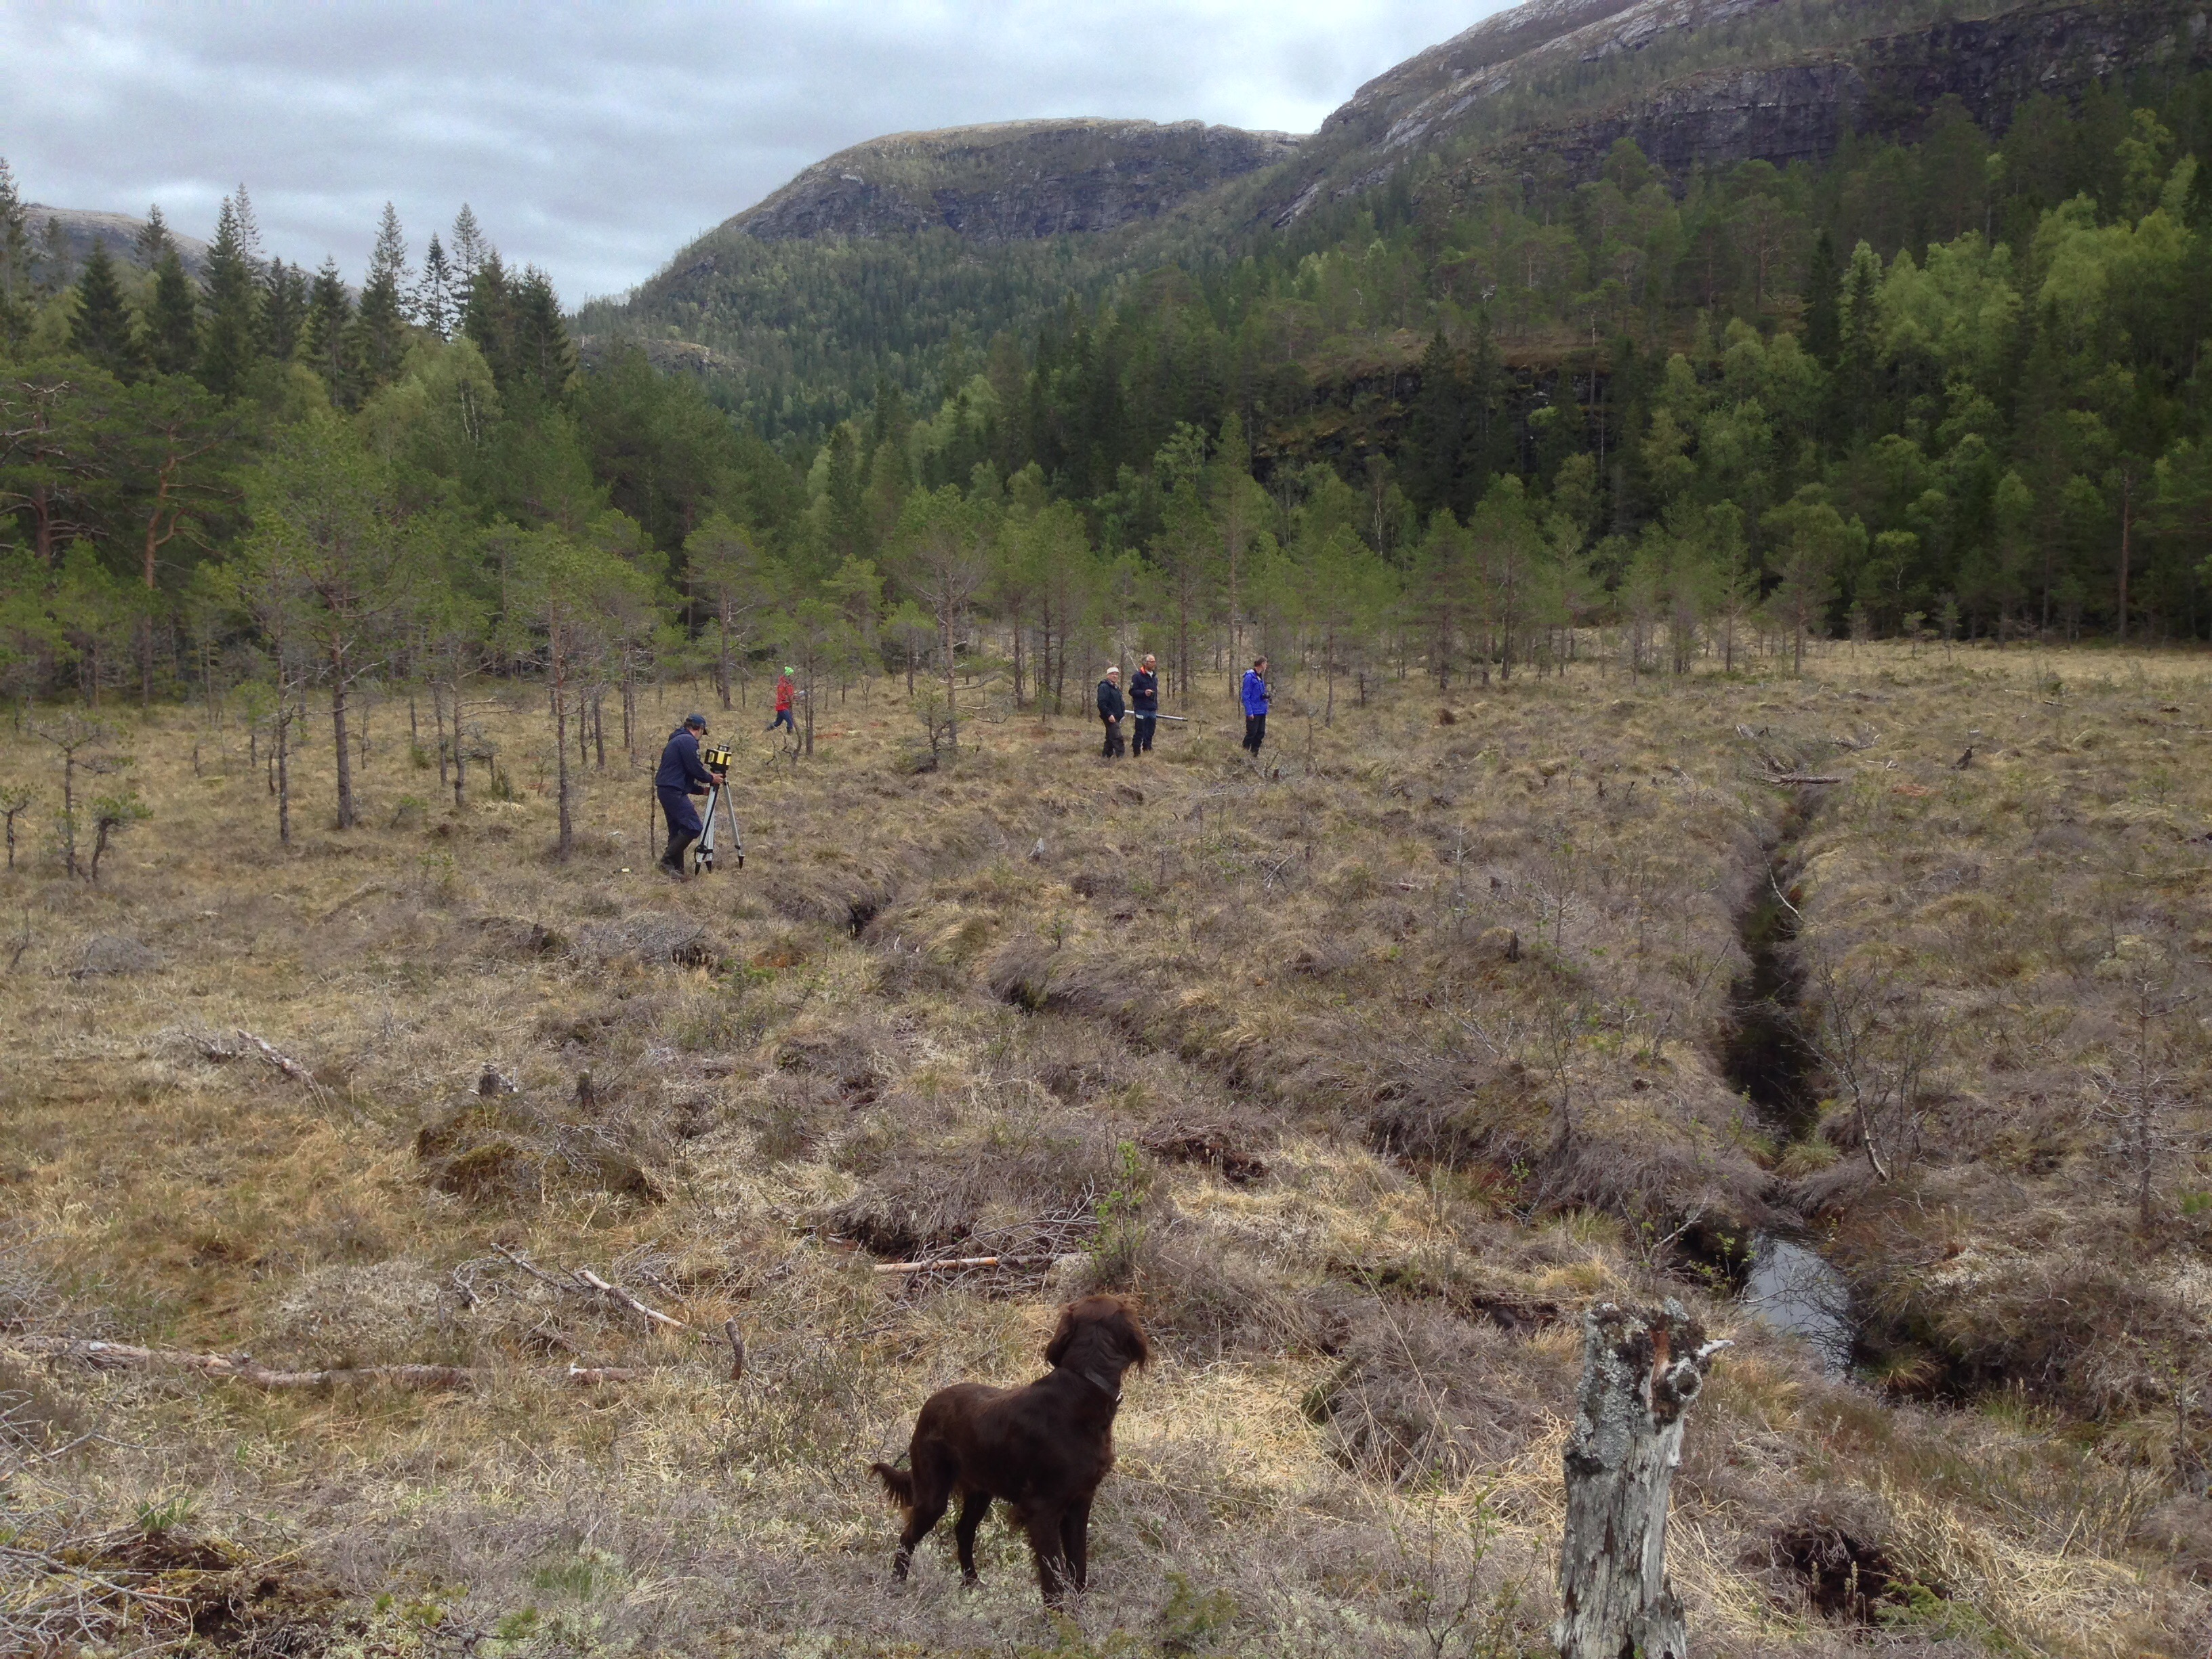 Equipment is placed and the ditched inspected. The mires have been effectively drained with ditches placed ca. 8-12 meters apart. Some pine and birch are now found on the mires as an effect of the drainage. In the background you can see some of the forestof the nature reserve. Photo: Marte Fandrem, NTNU University Museum